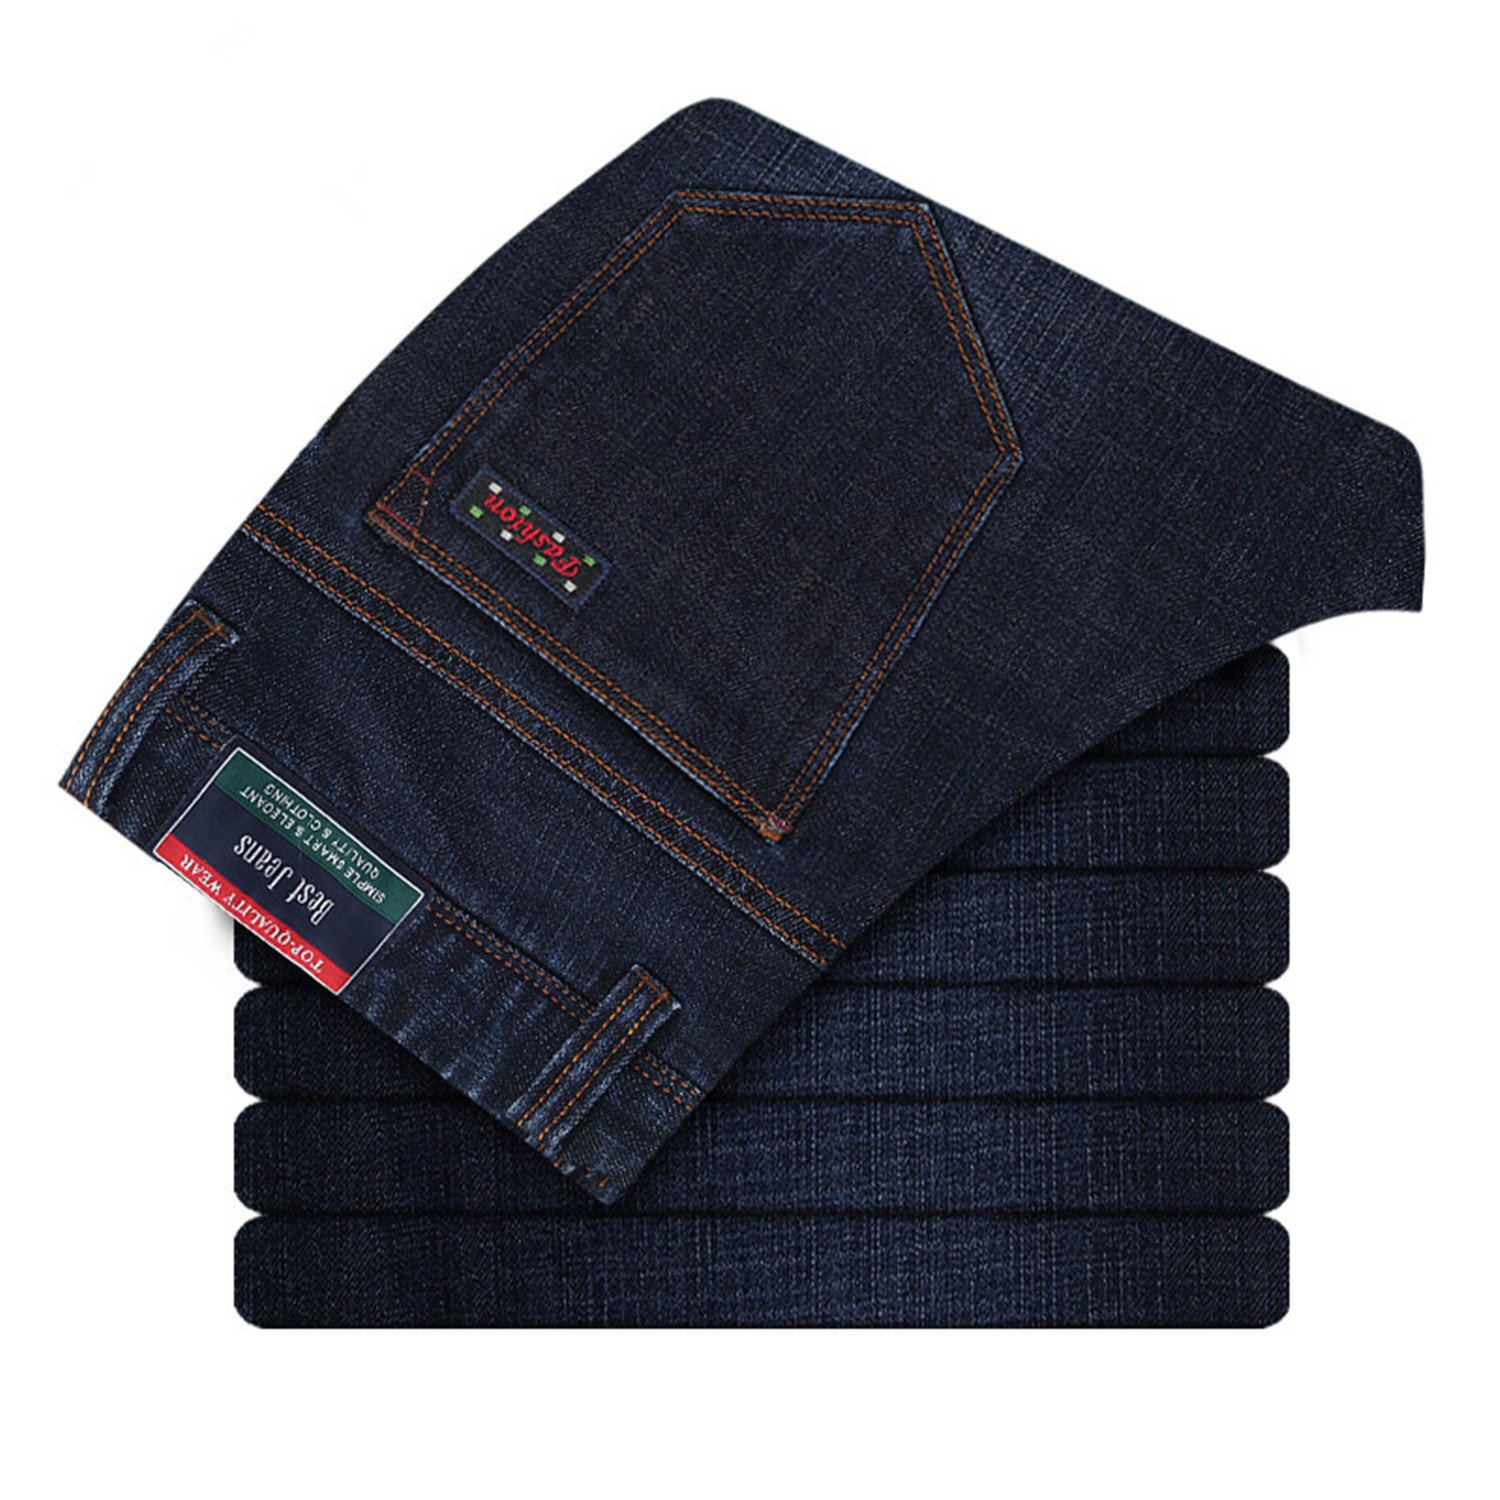 Thadensama New Mens Plus Size Jeans Big Size Jeans Casual Pants Denim Slim Fit Trousers For Man Size 28-44